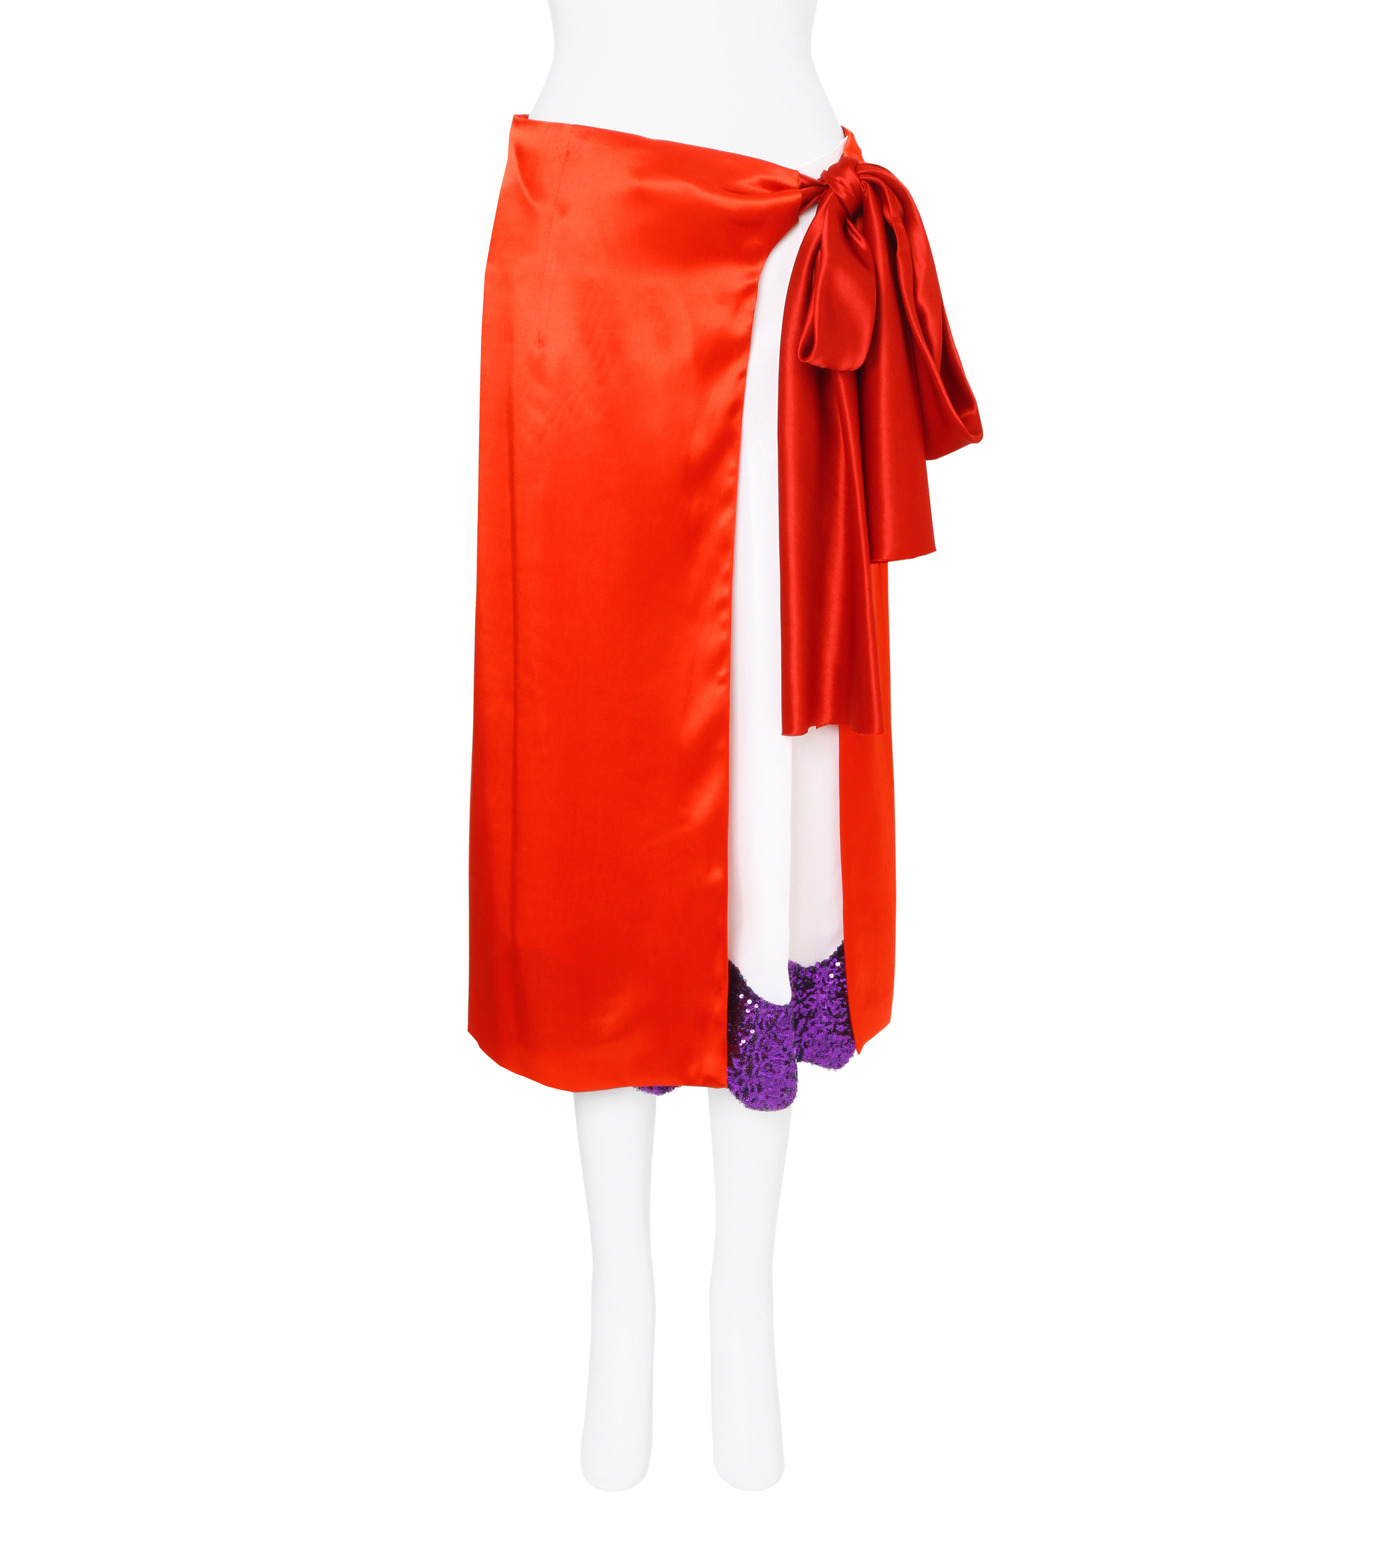 Toga Pulla(トーガ プルラ)のRayon Satin Skirt w/Sequin-RED(スカート/skirt)-TP71-FG238-62 拡大詳細画像1